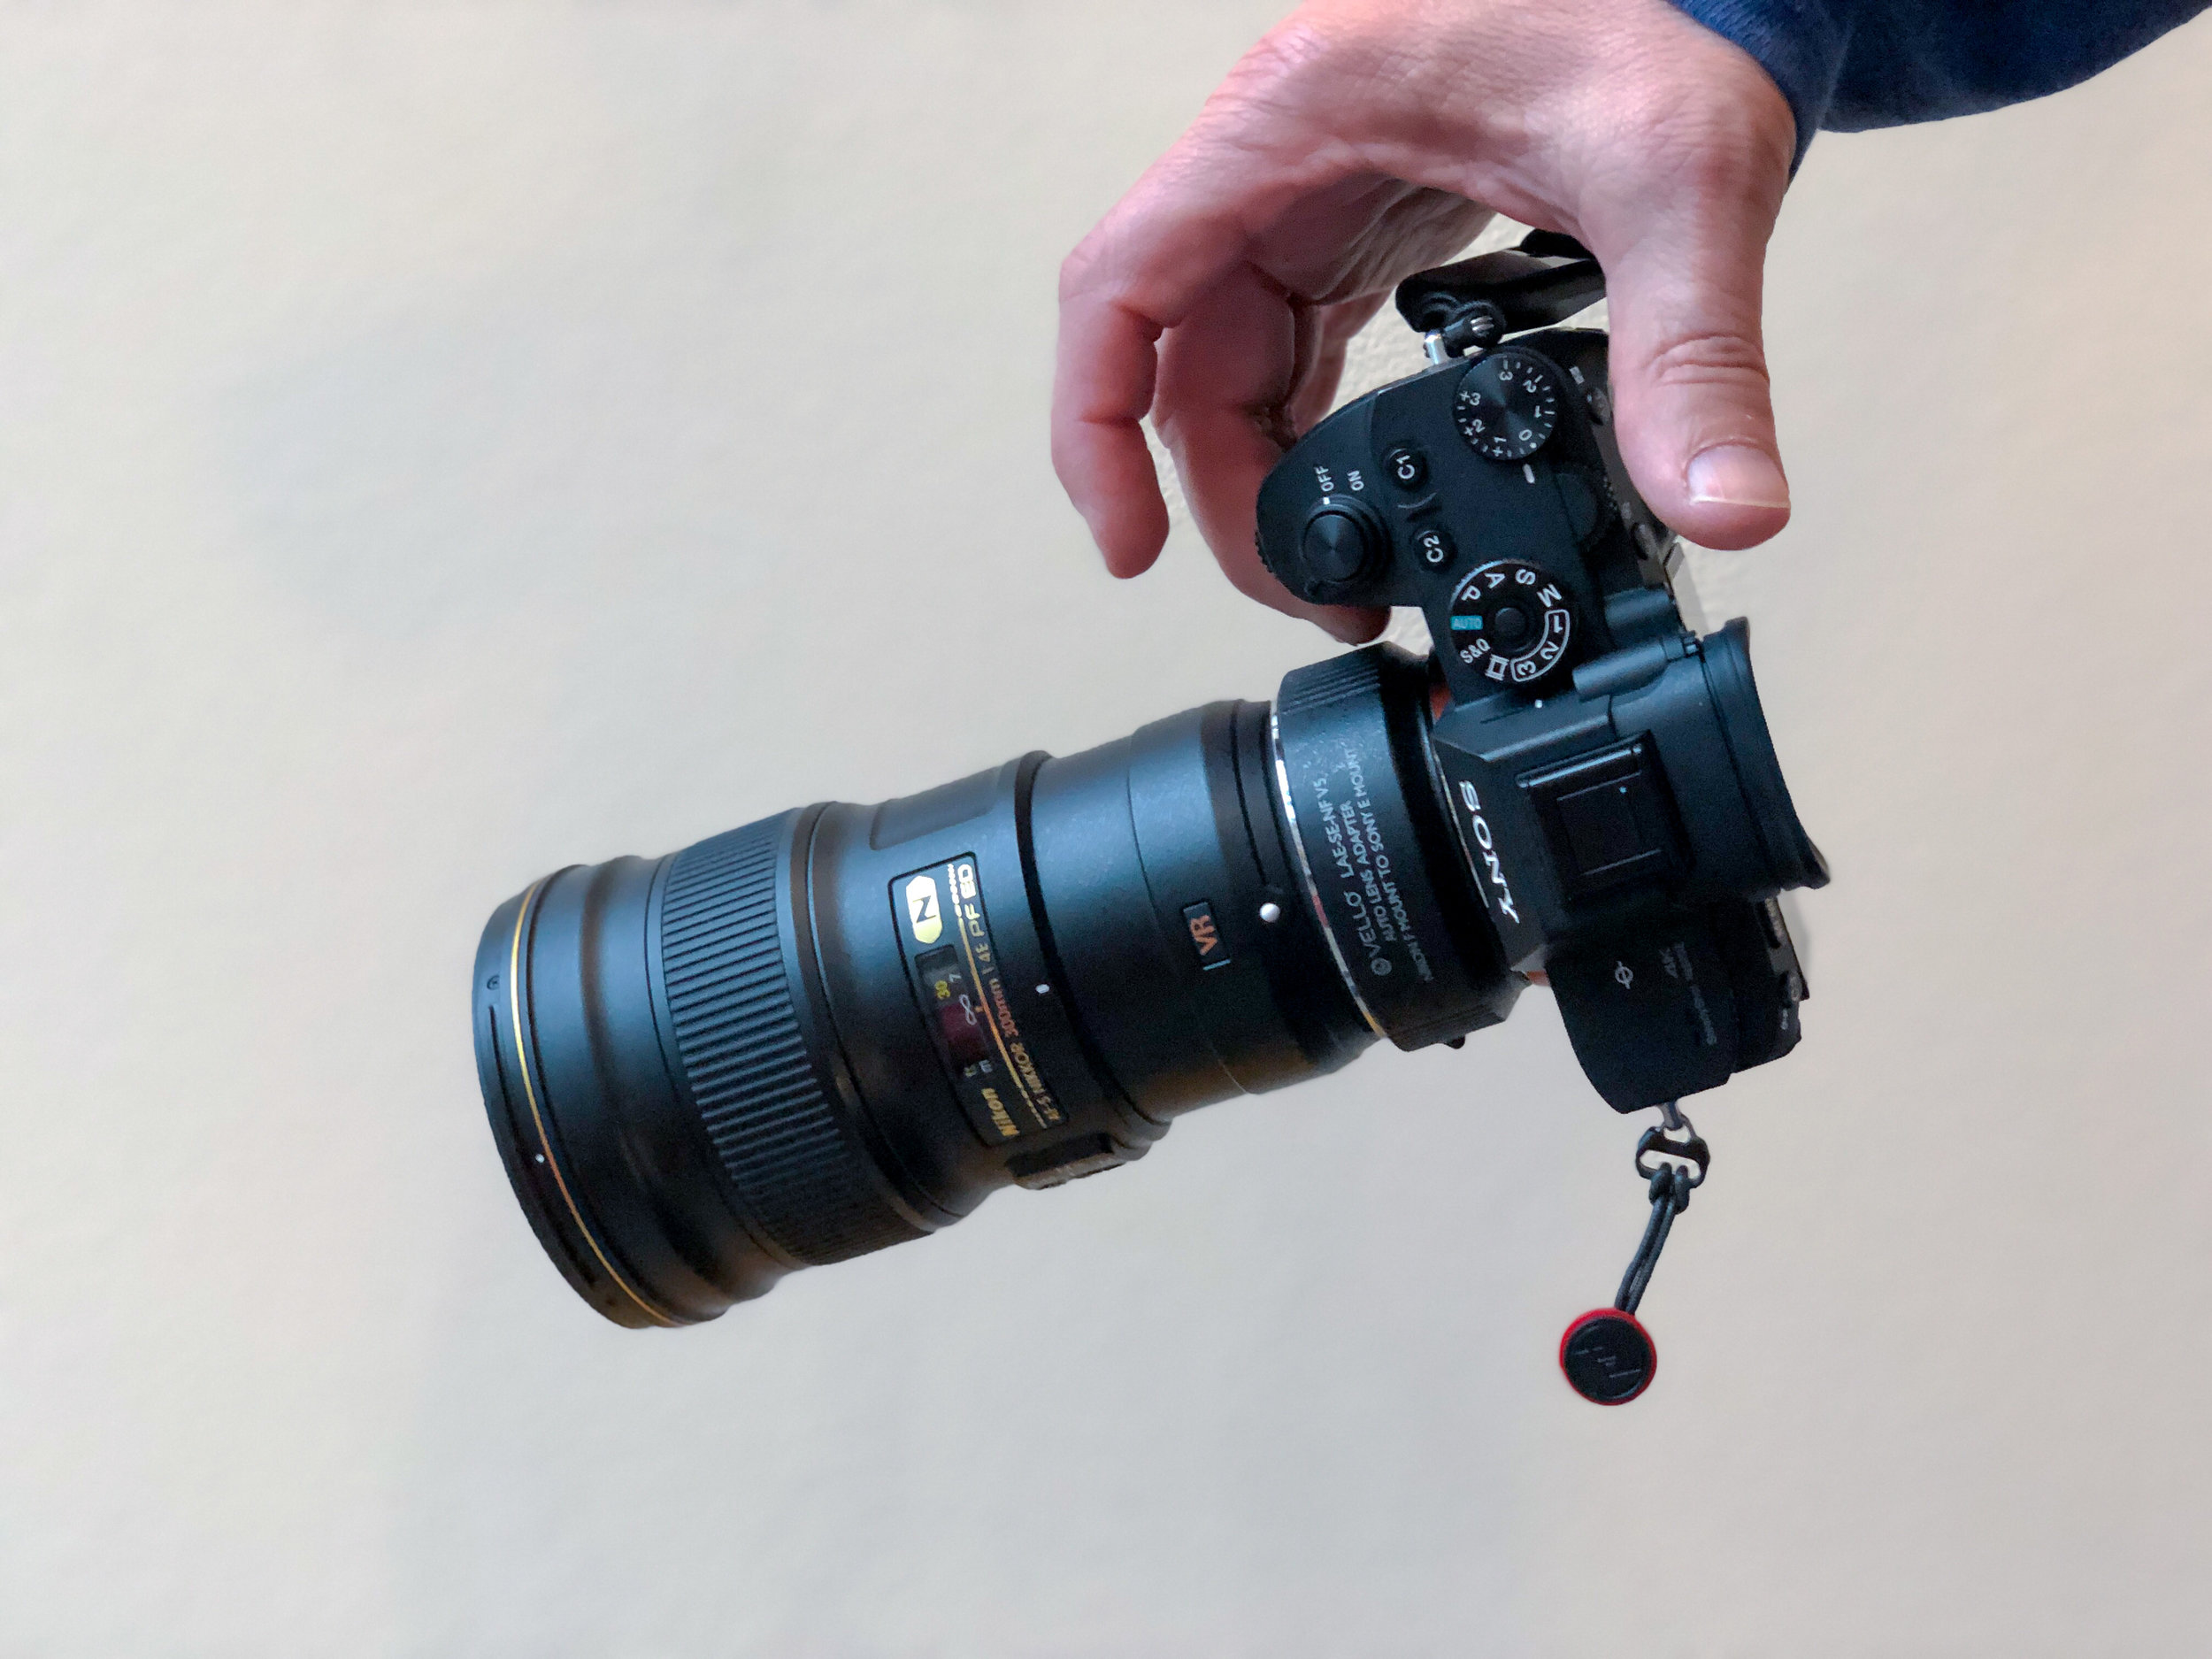 Sony A7R3 with Nikon 300mm f/4 PF and Vello adaptor